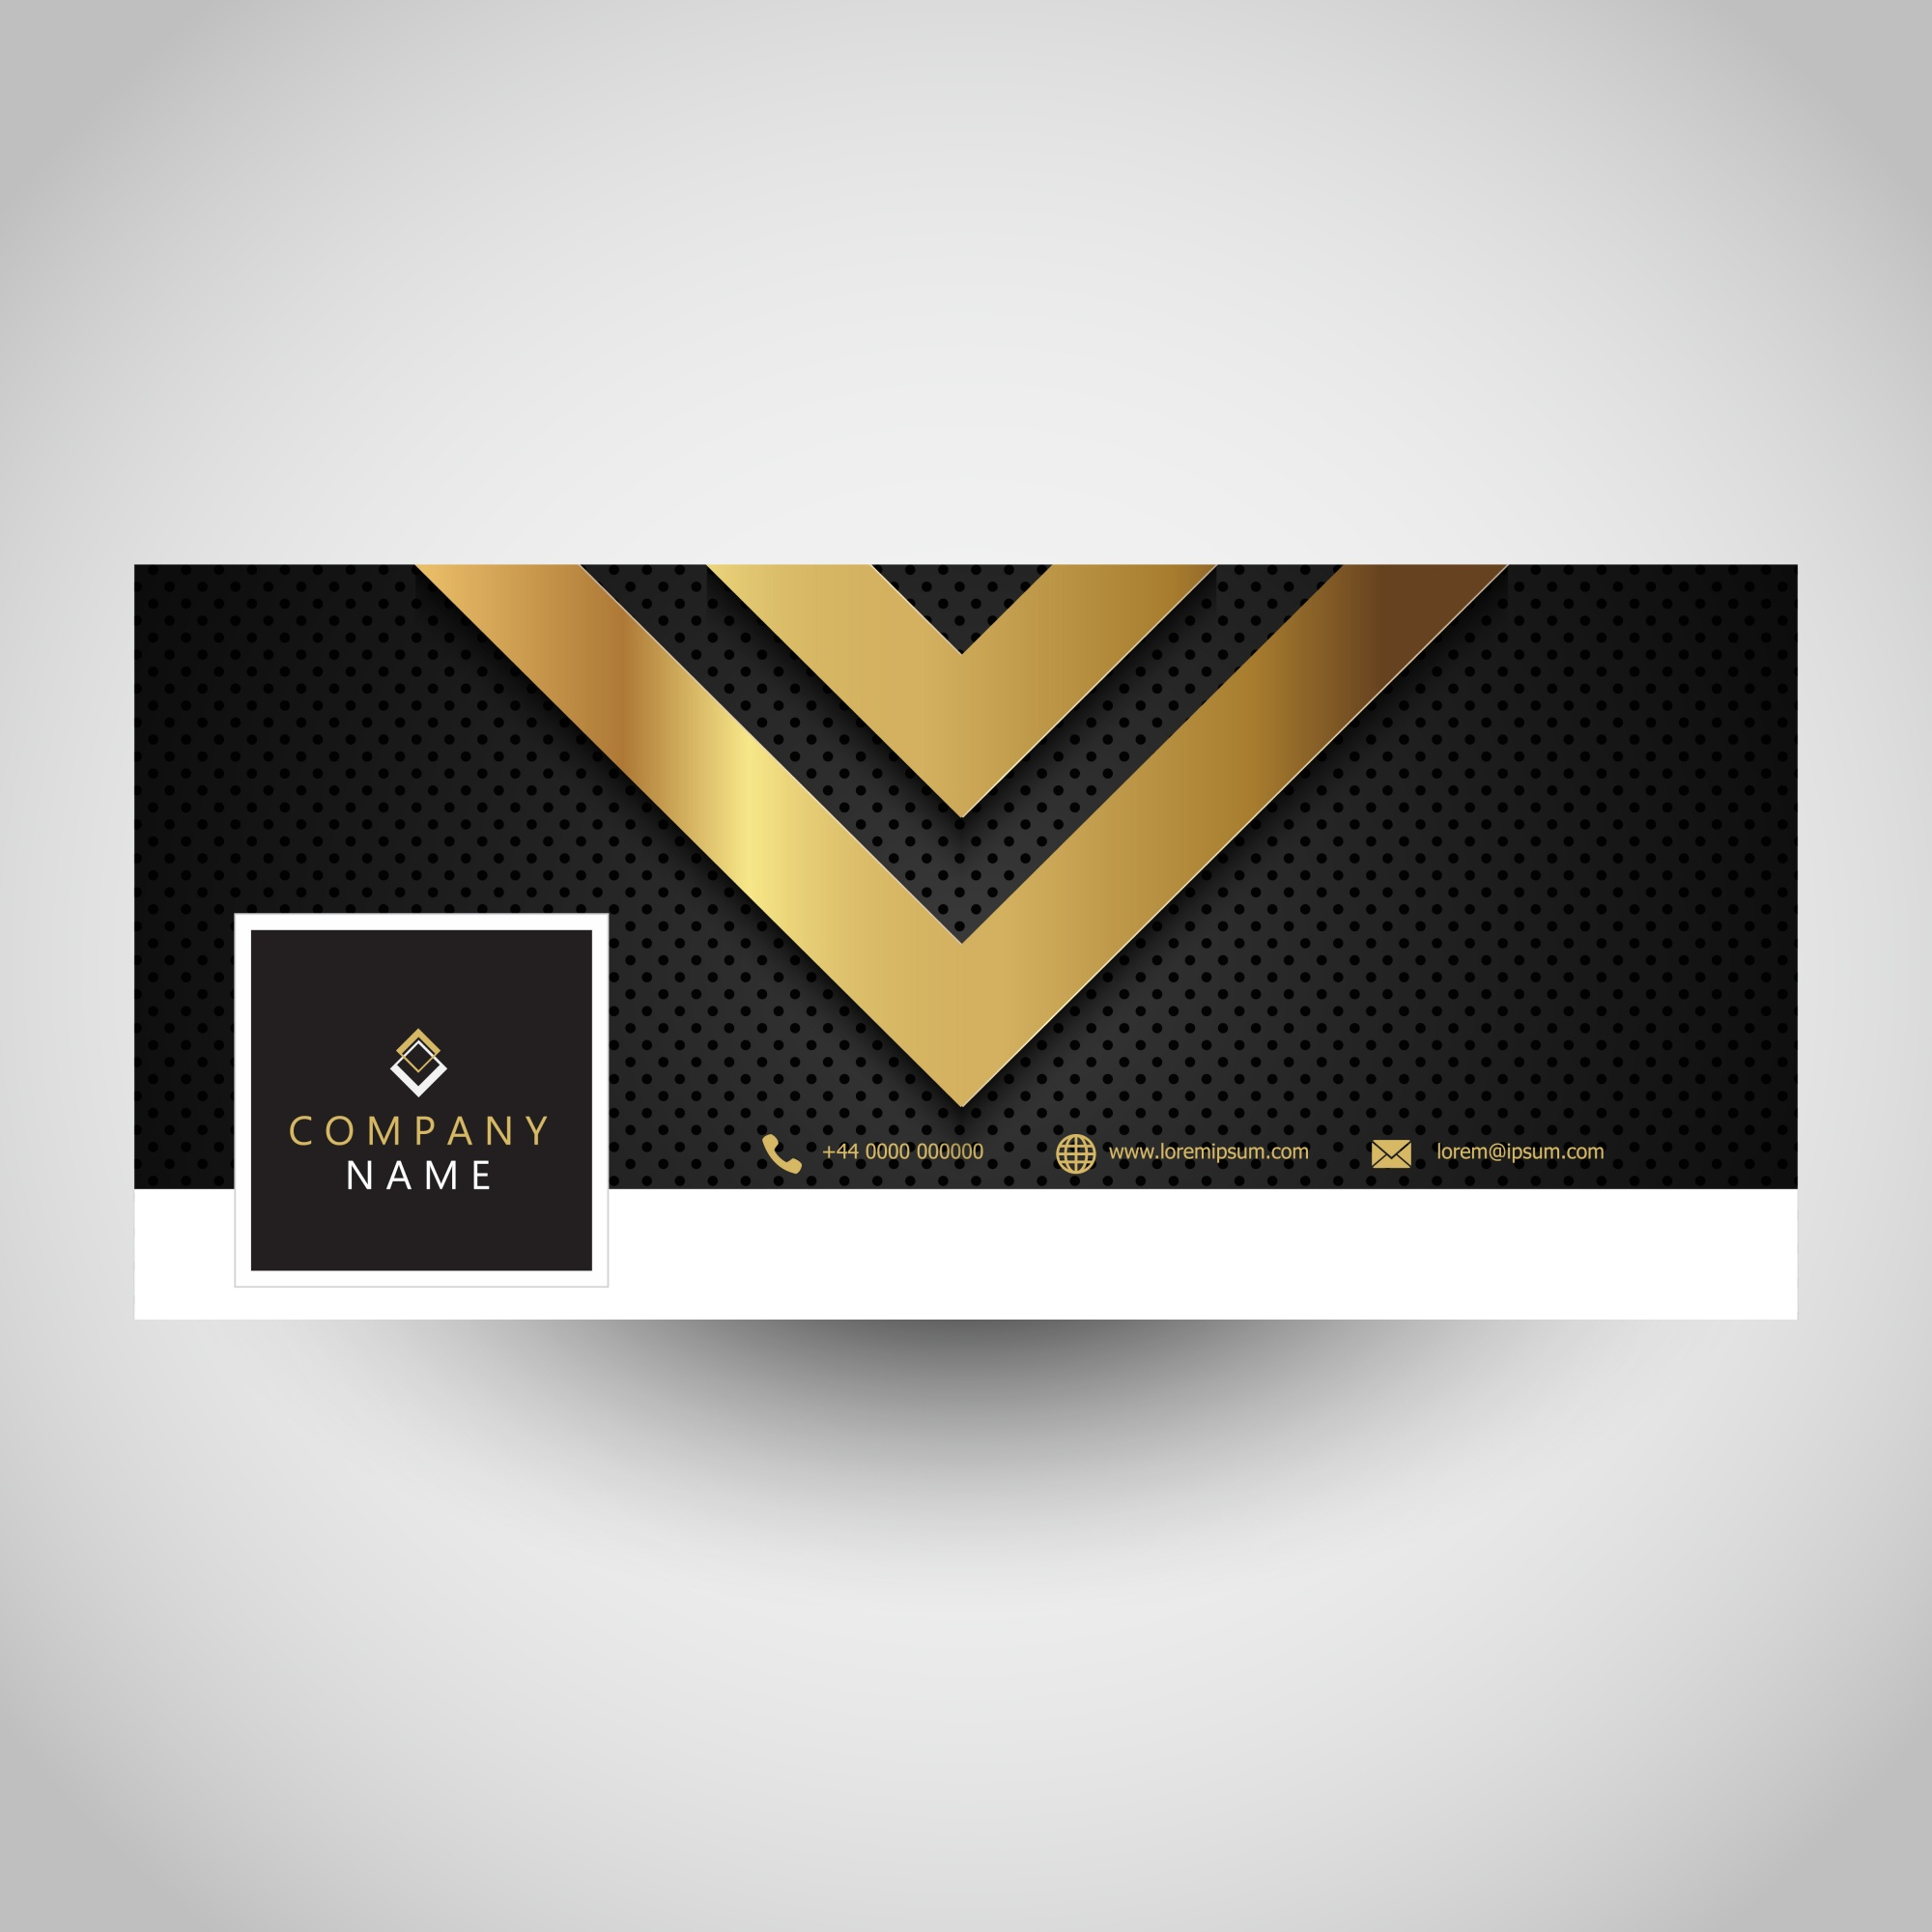 Social media cover with abstract metallic design